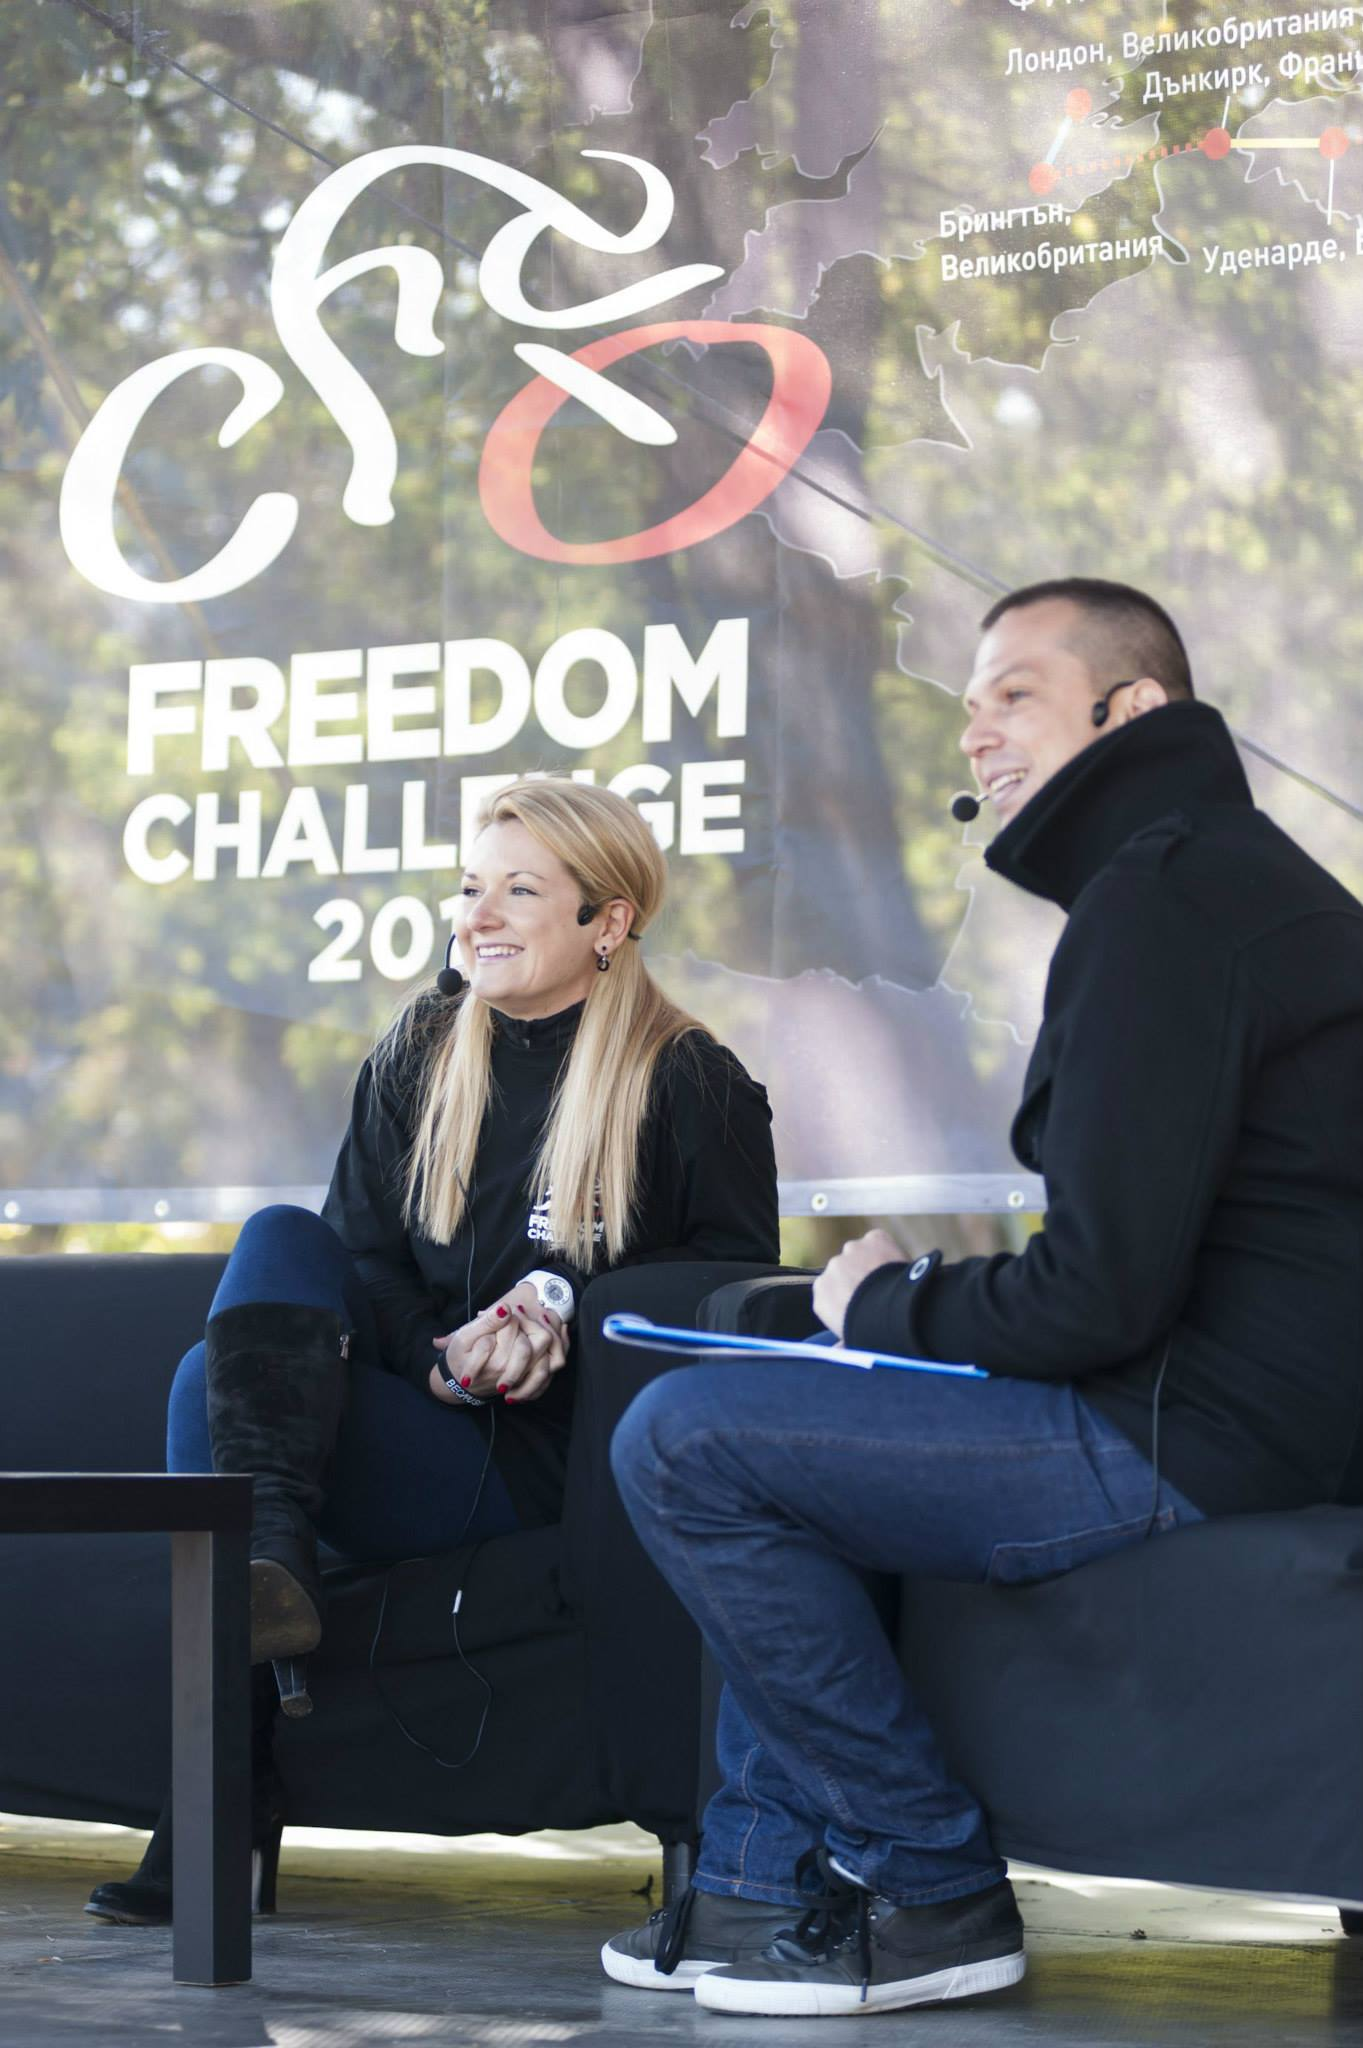 Freedom Challenge charity event, 2014